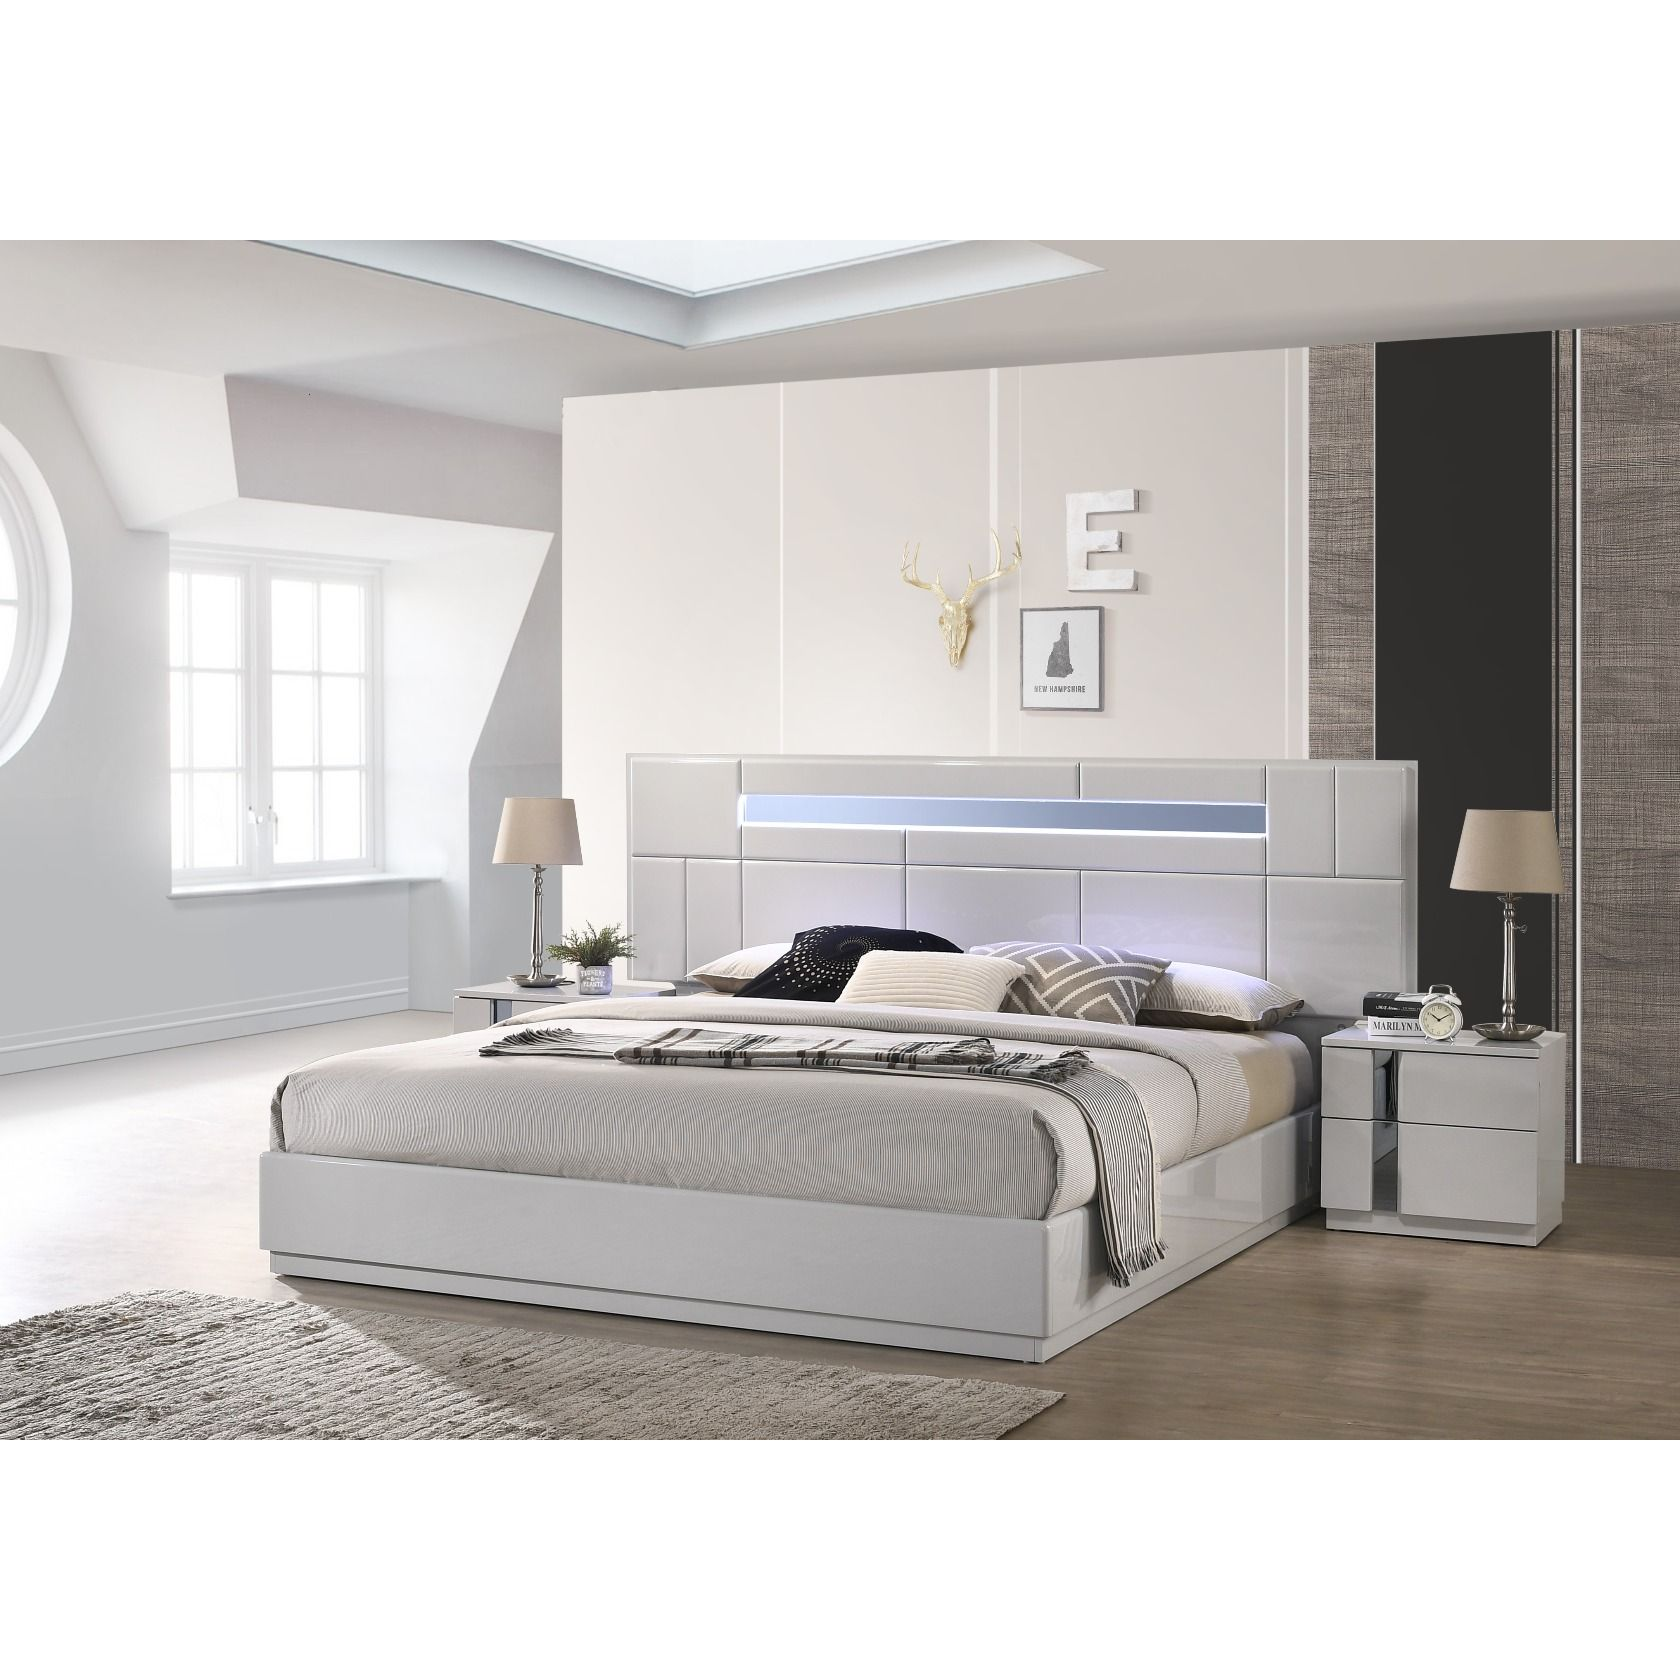 ✅ Palermo Grey Queen Size Bed | BostonConcept.com